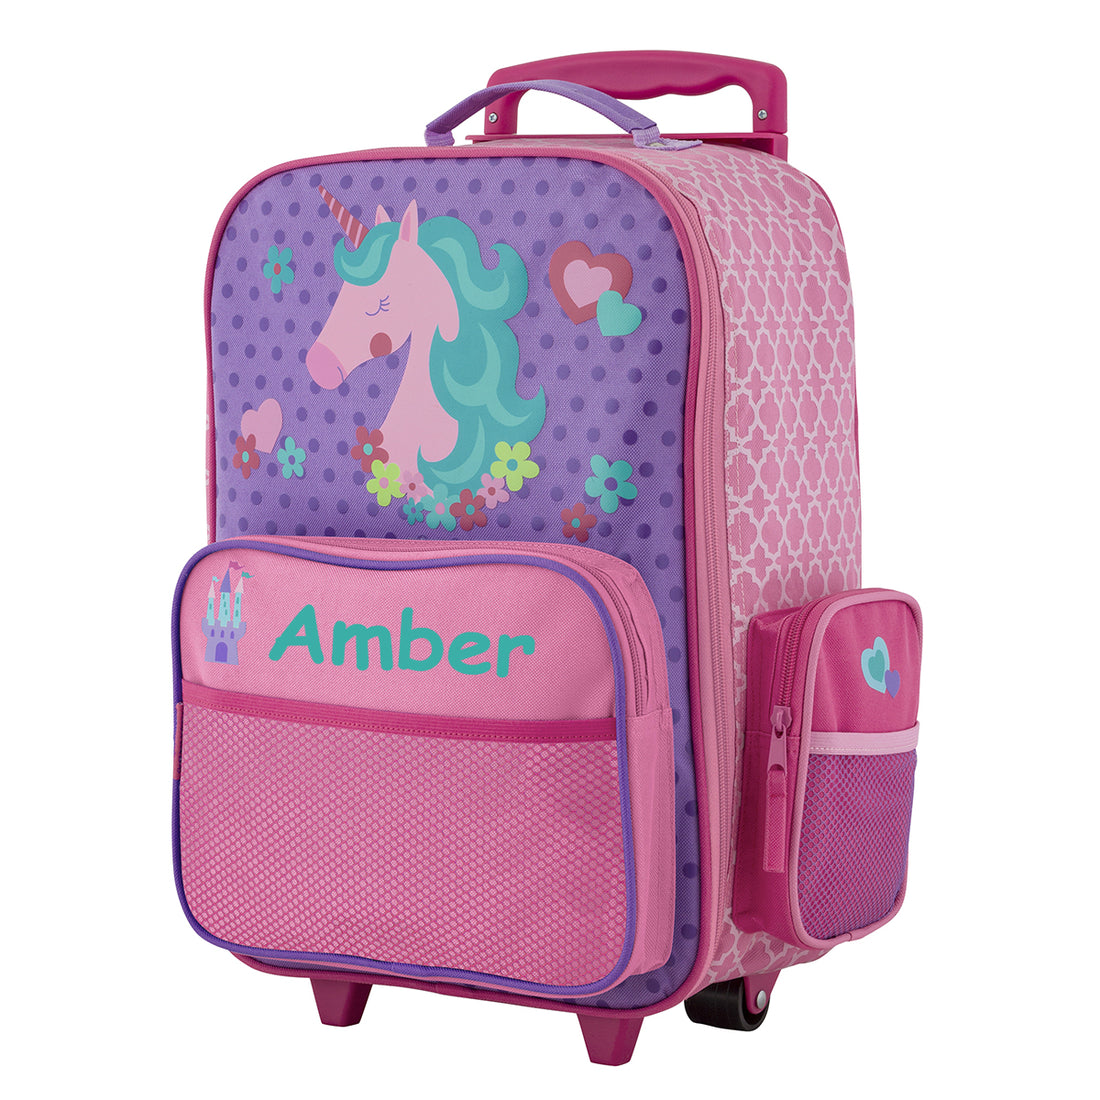 The Personalised Magical Unicorn Rolling Luggage